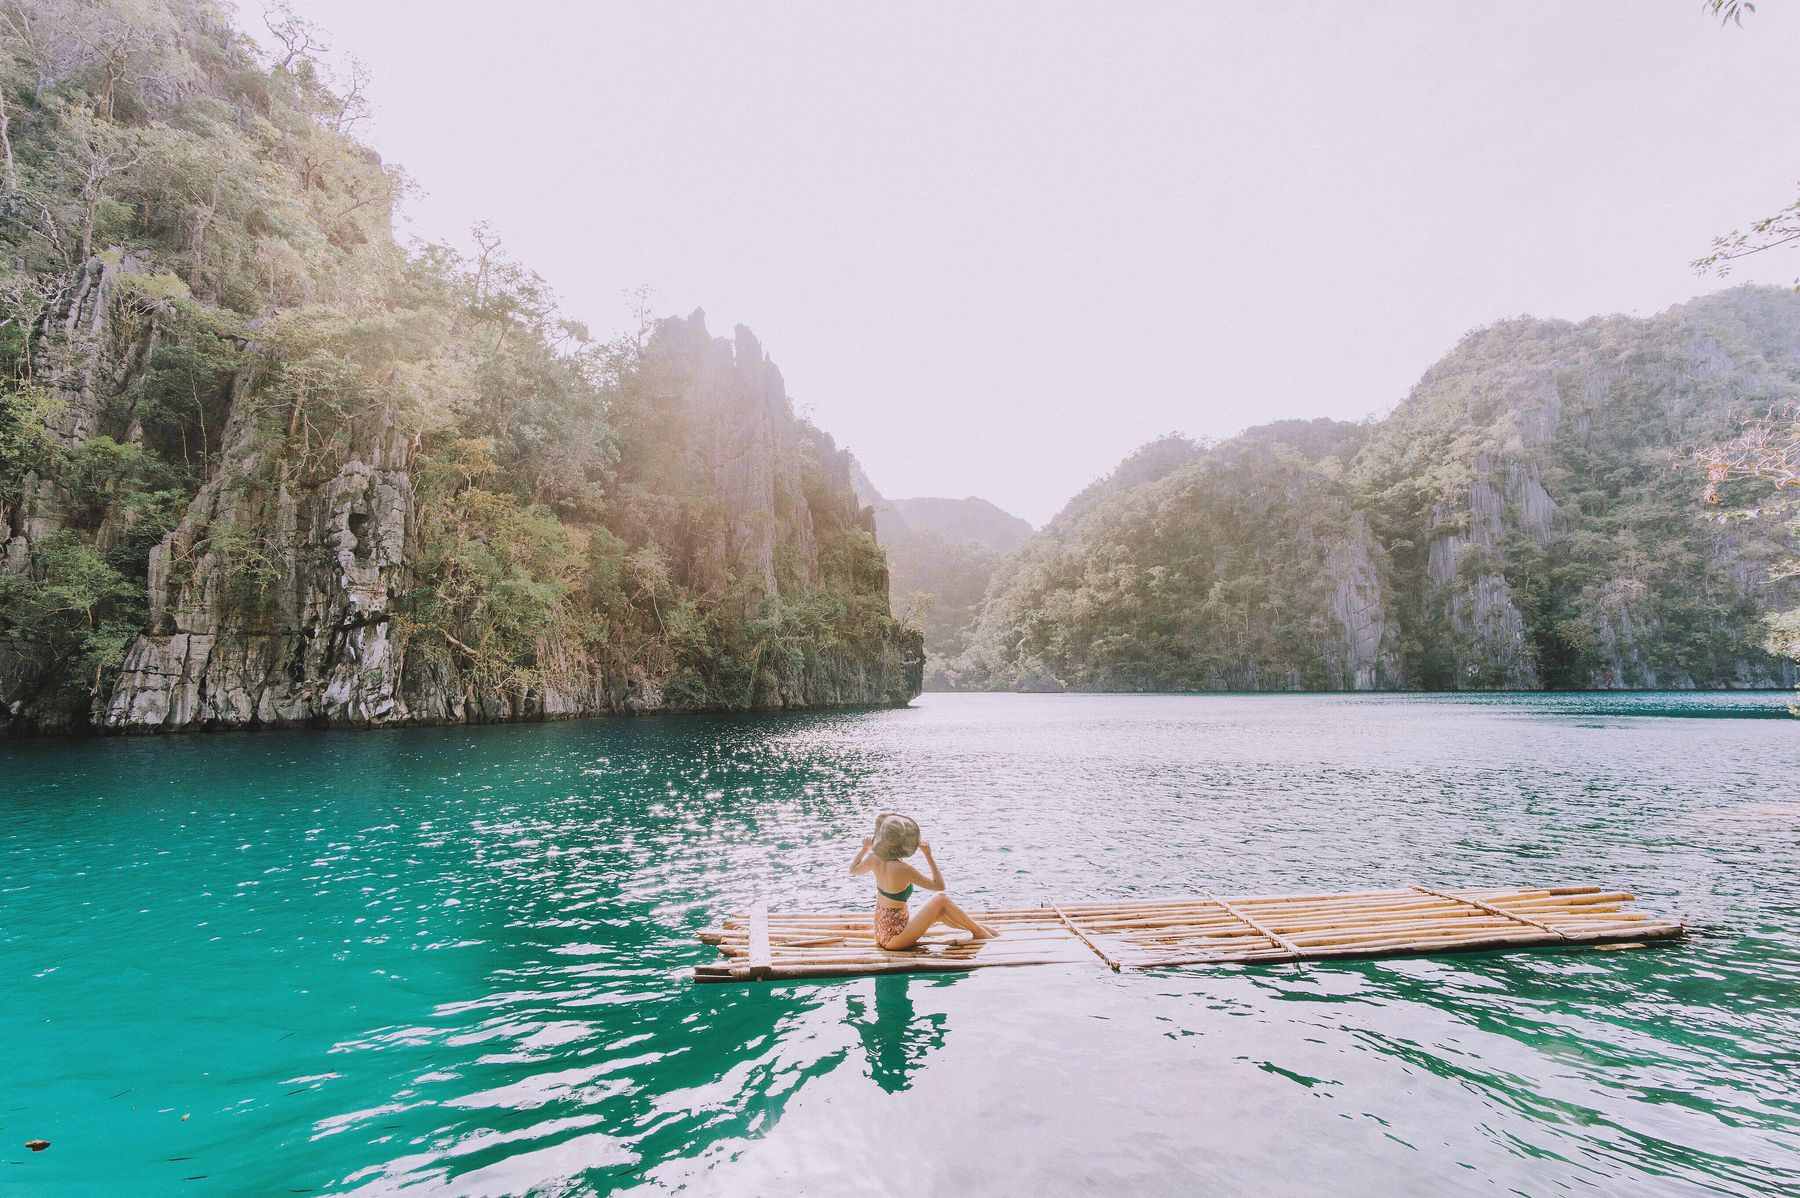 woman on a bamboo raft floating on a lake